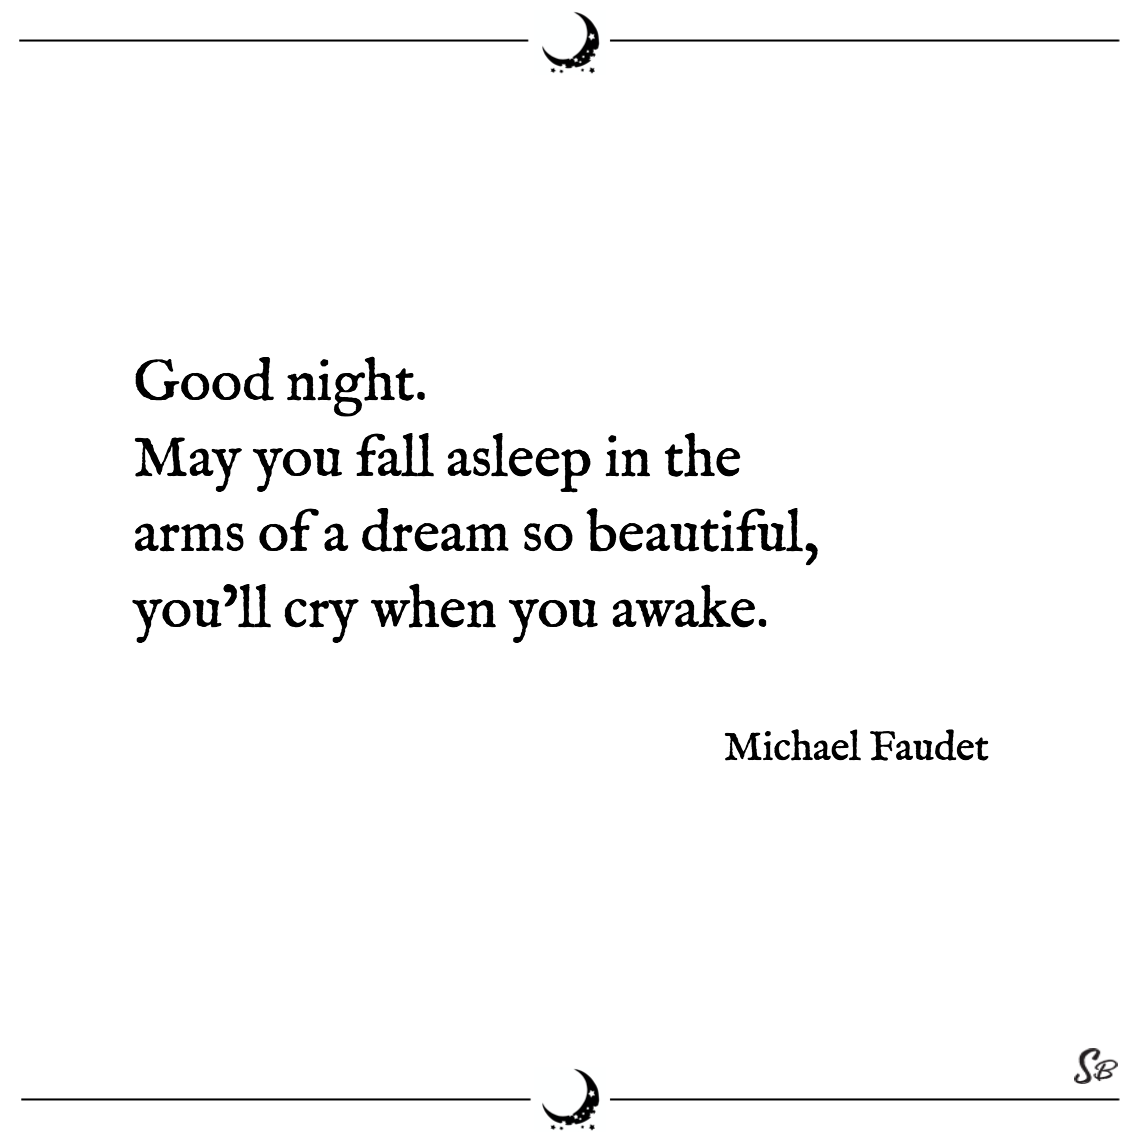 Good night. may you fall asleep in the arms of a dream so beautiful, you'll cry when you awake. michael faudet good night quotes